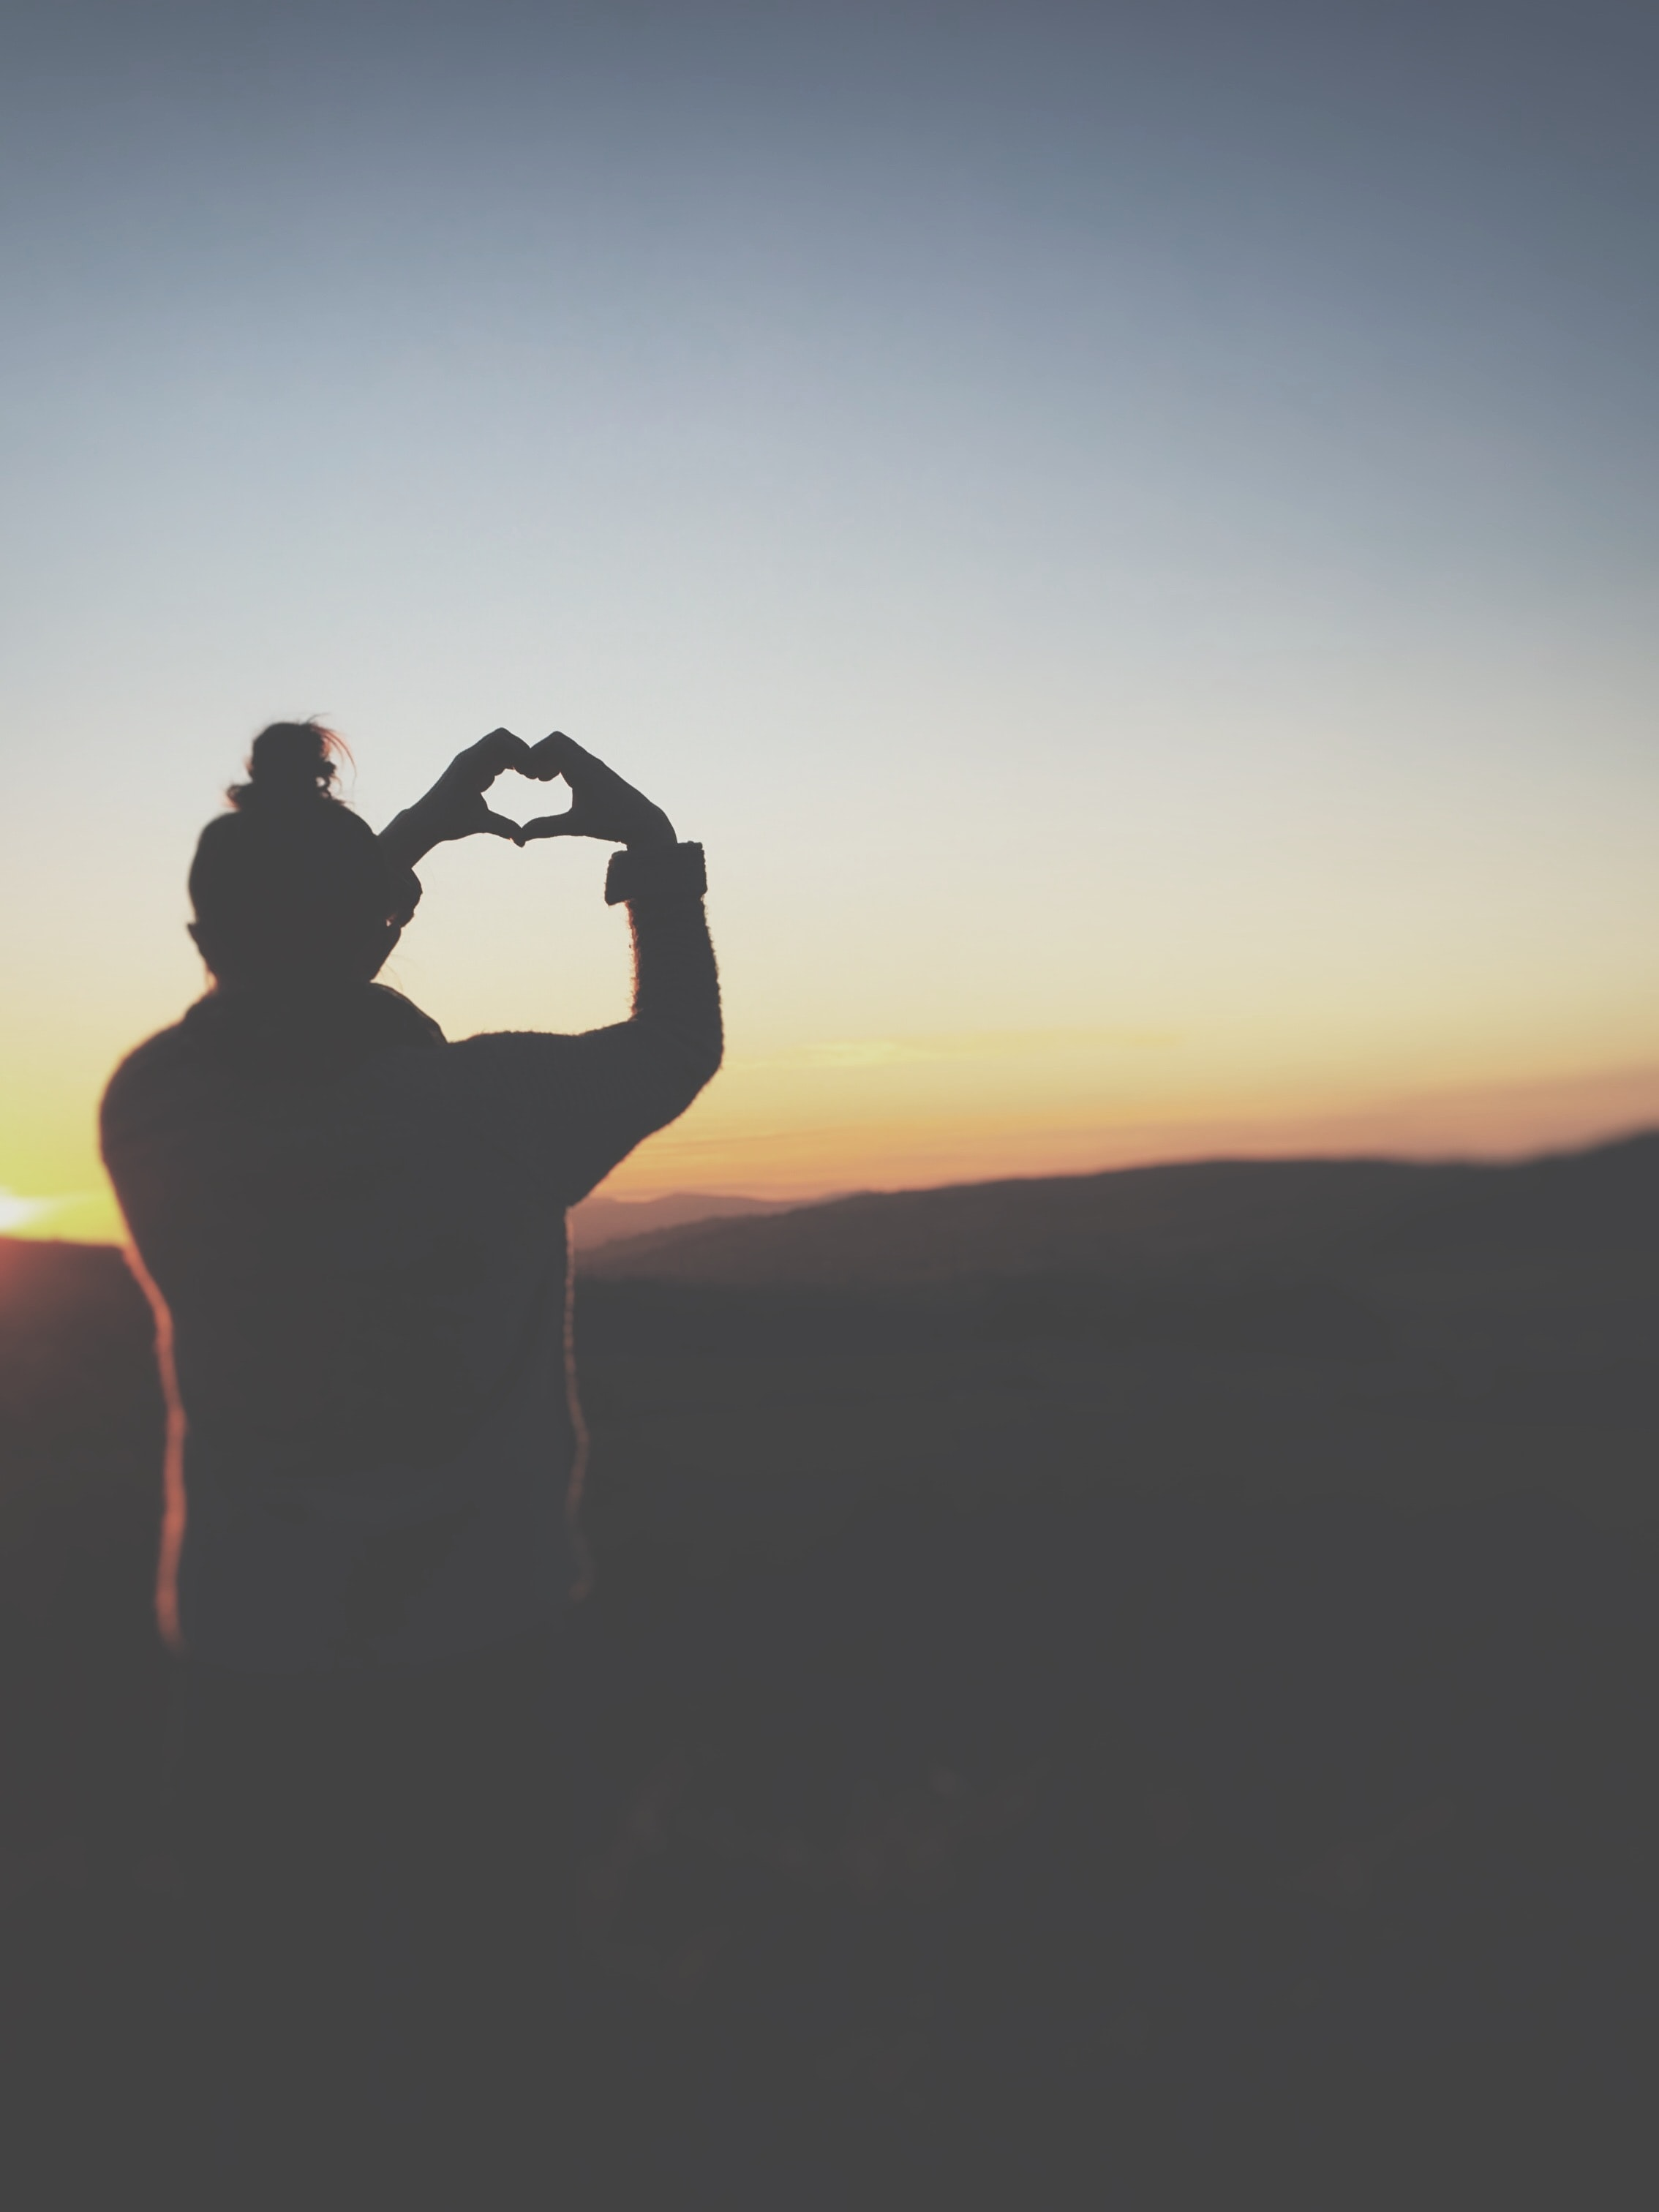 A silhouette of a person making a heart shape with their hands against the twilight sky